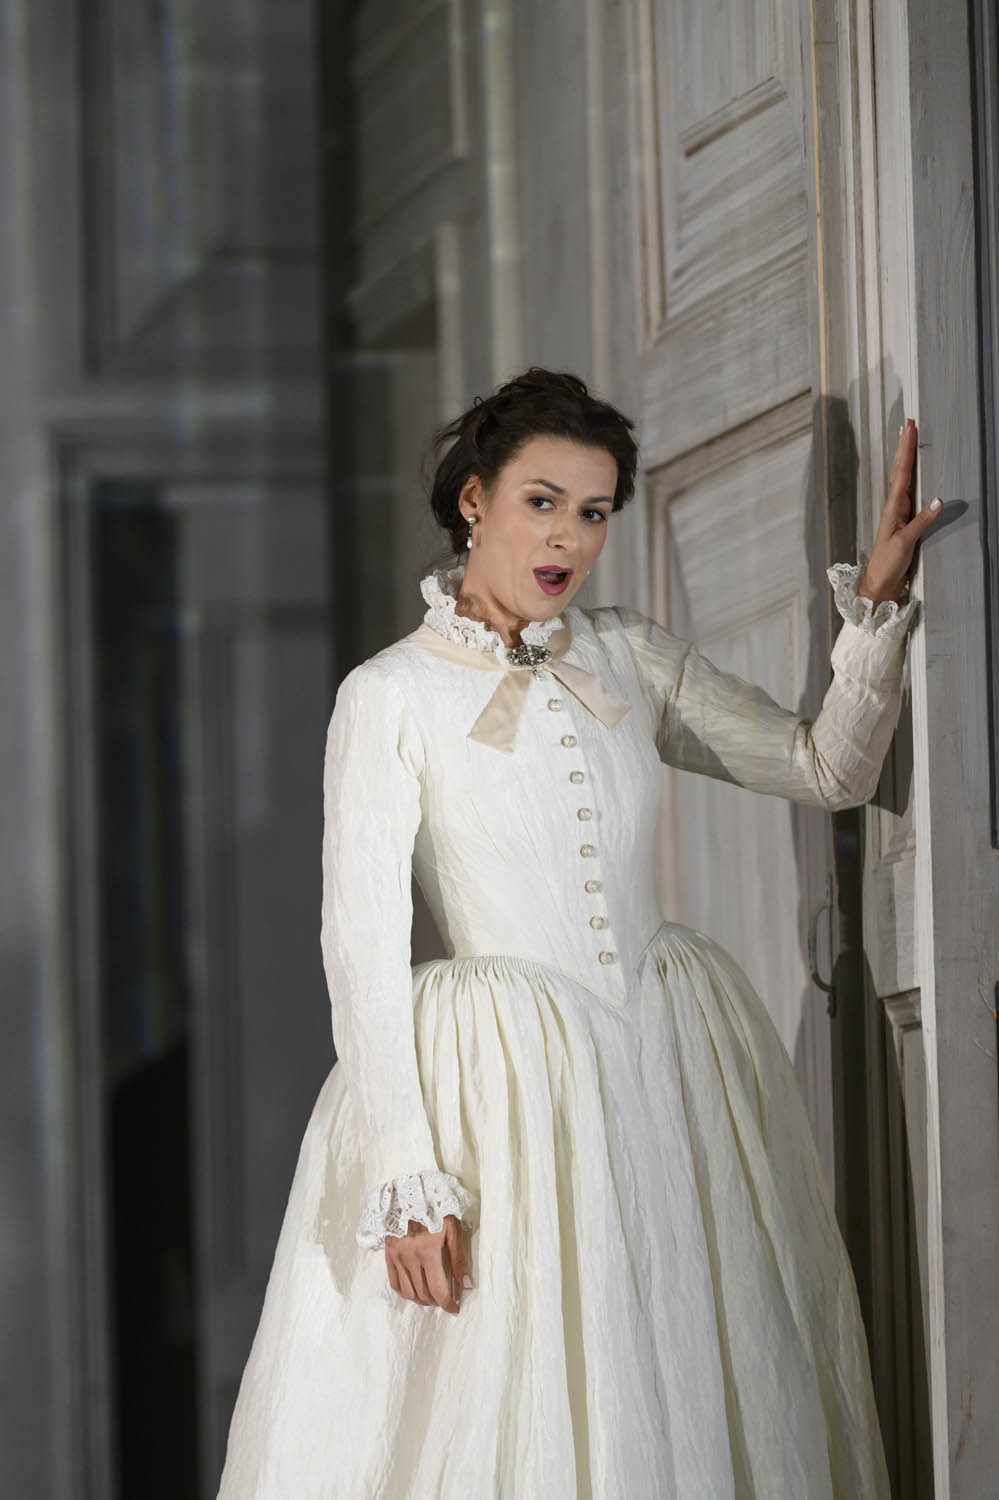 Chen Reiss as Zerlina © Royal Opera House/ Bill Cooper